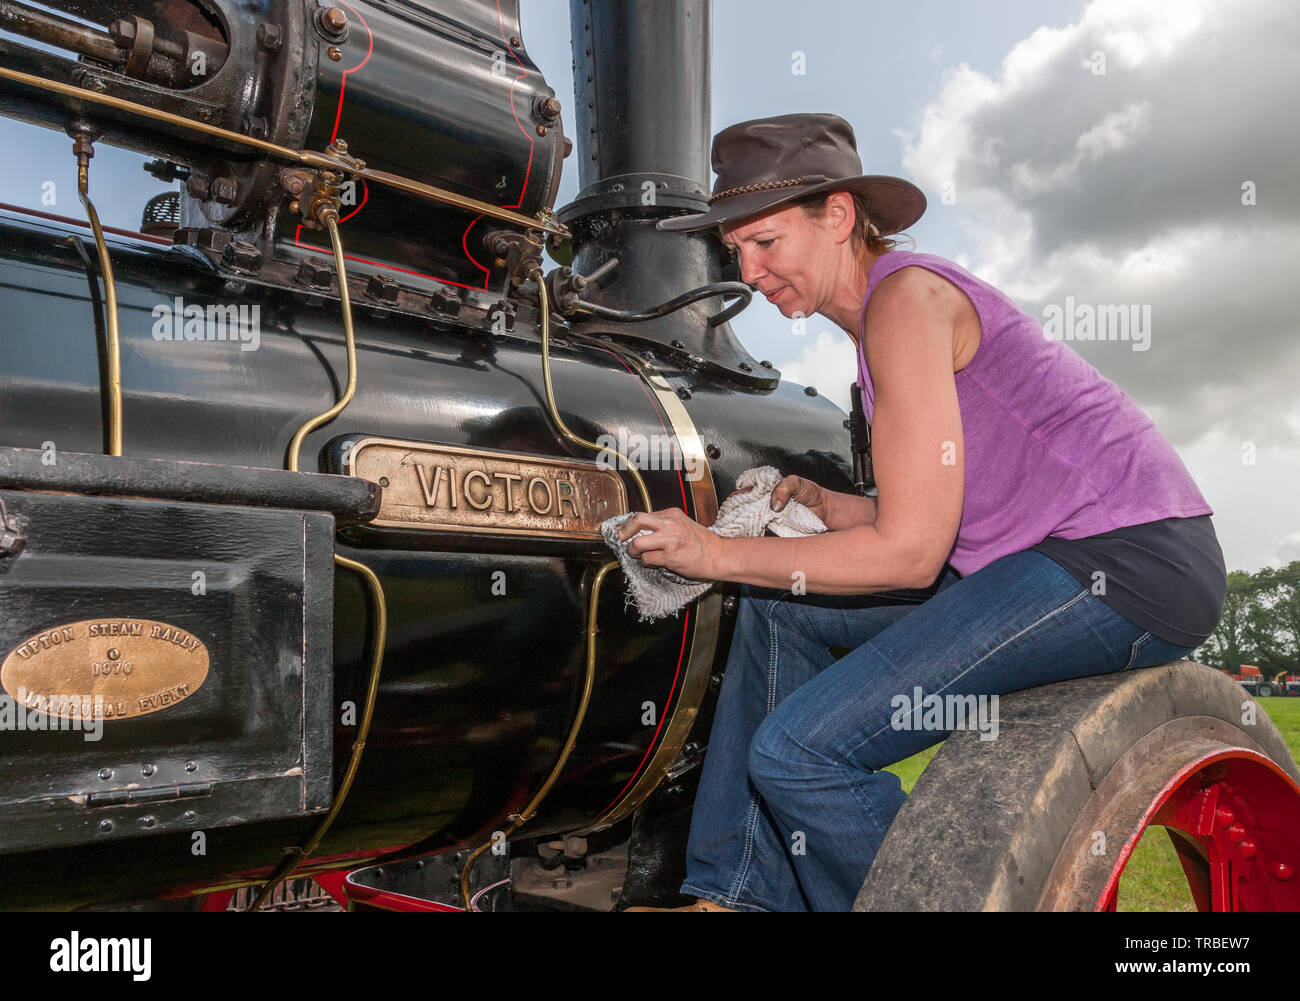 Innishannon, Cork, Ireland. 02nd June, 2019. Norma Lordan from Kilpatrick, polishing the brass name plate on a 1907 Marshall Engine which is taking part in the steam and vintage rally at Innshannon, Co. Cork, Ireland Credit: David Creedon/Alamy Live News Credit: David Creedon/Alamy Live News - Stock Image